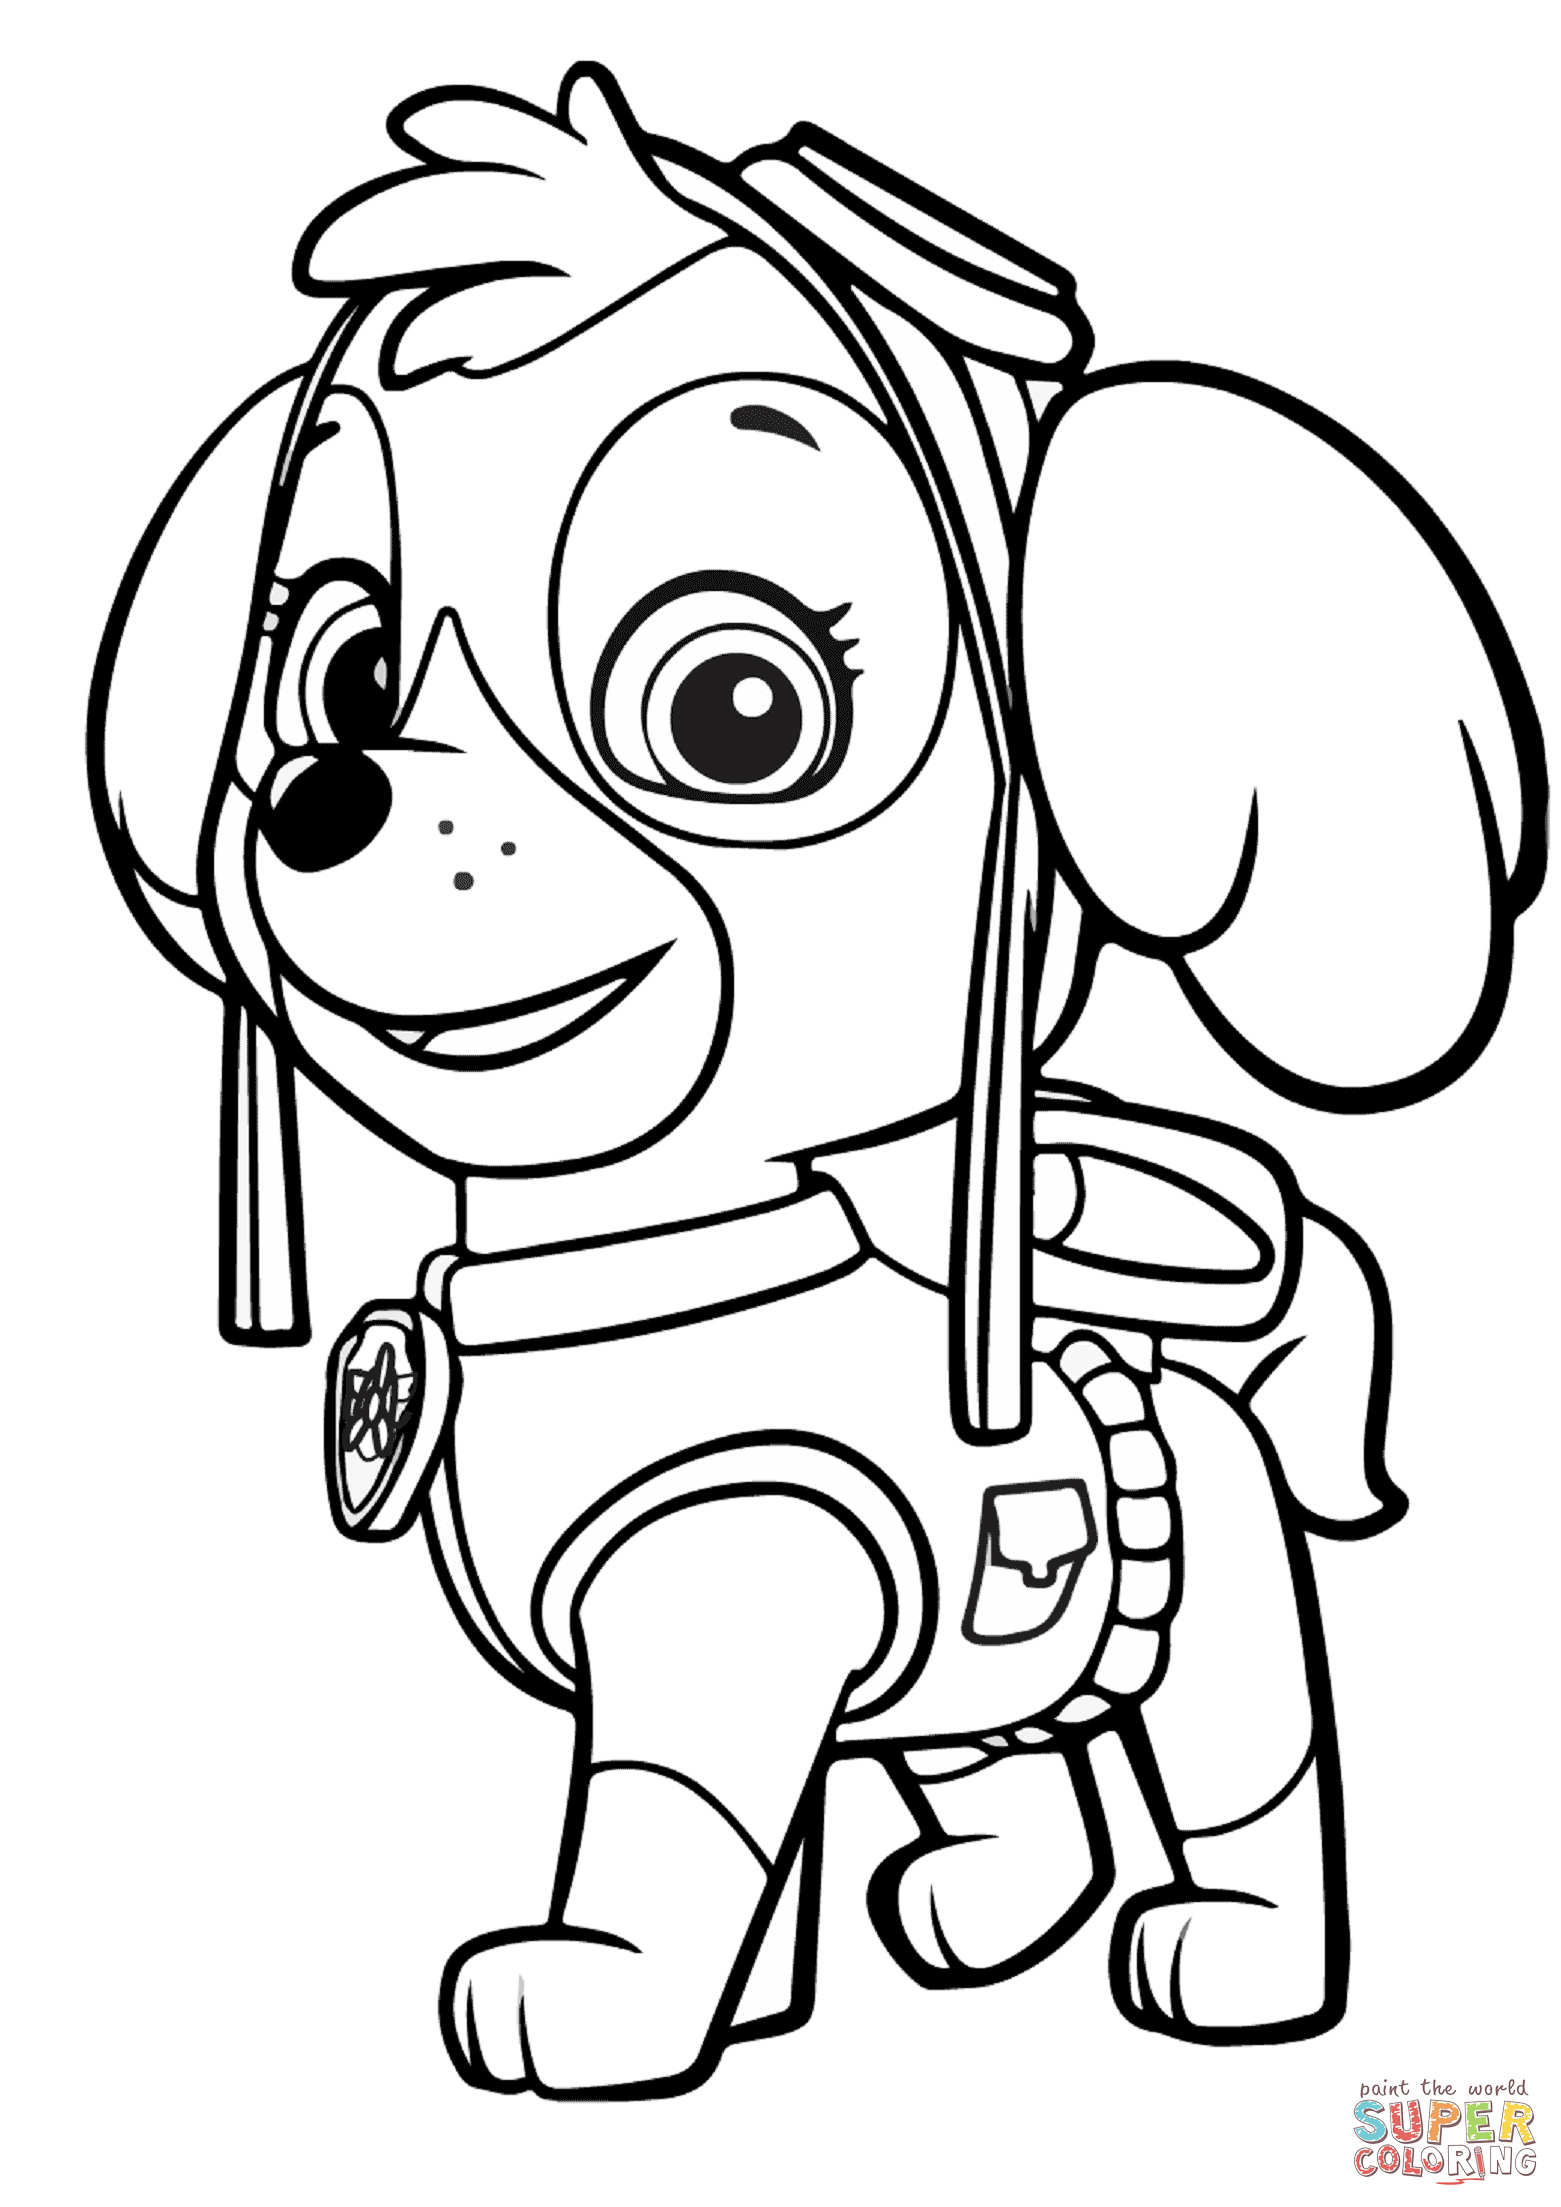 Pdf Coloring Pages For Kids Coloring Pages Pdf Free Download Best Coloring Pages Pdf On